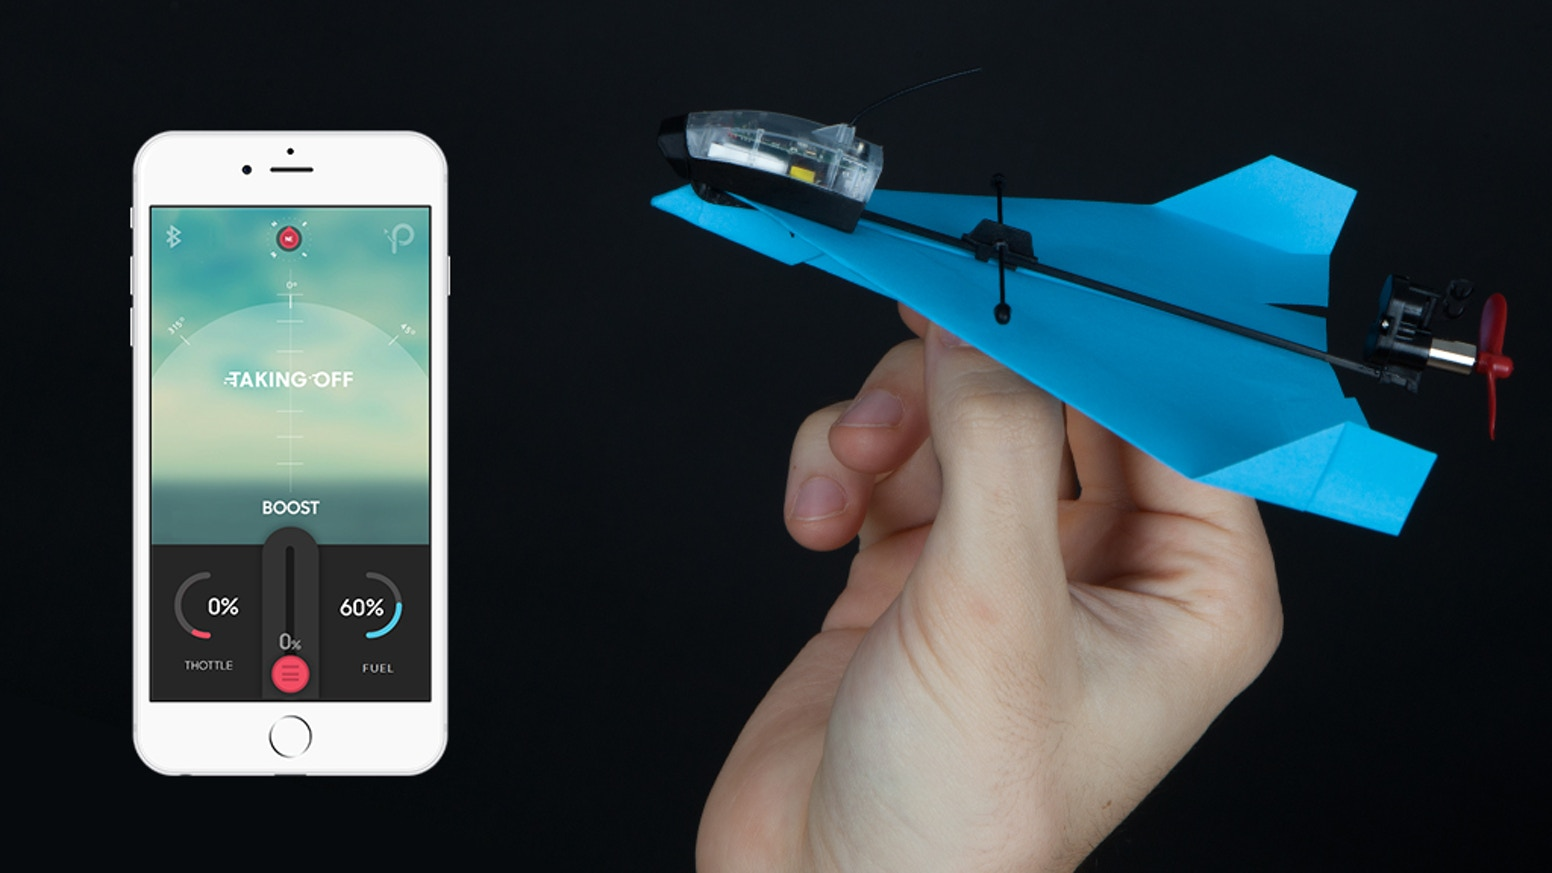 Loop, flip and barrel roll with tiny smart paper airplanes designed to do a variety of mind-blowing aerobatics.